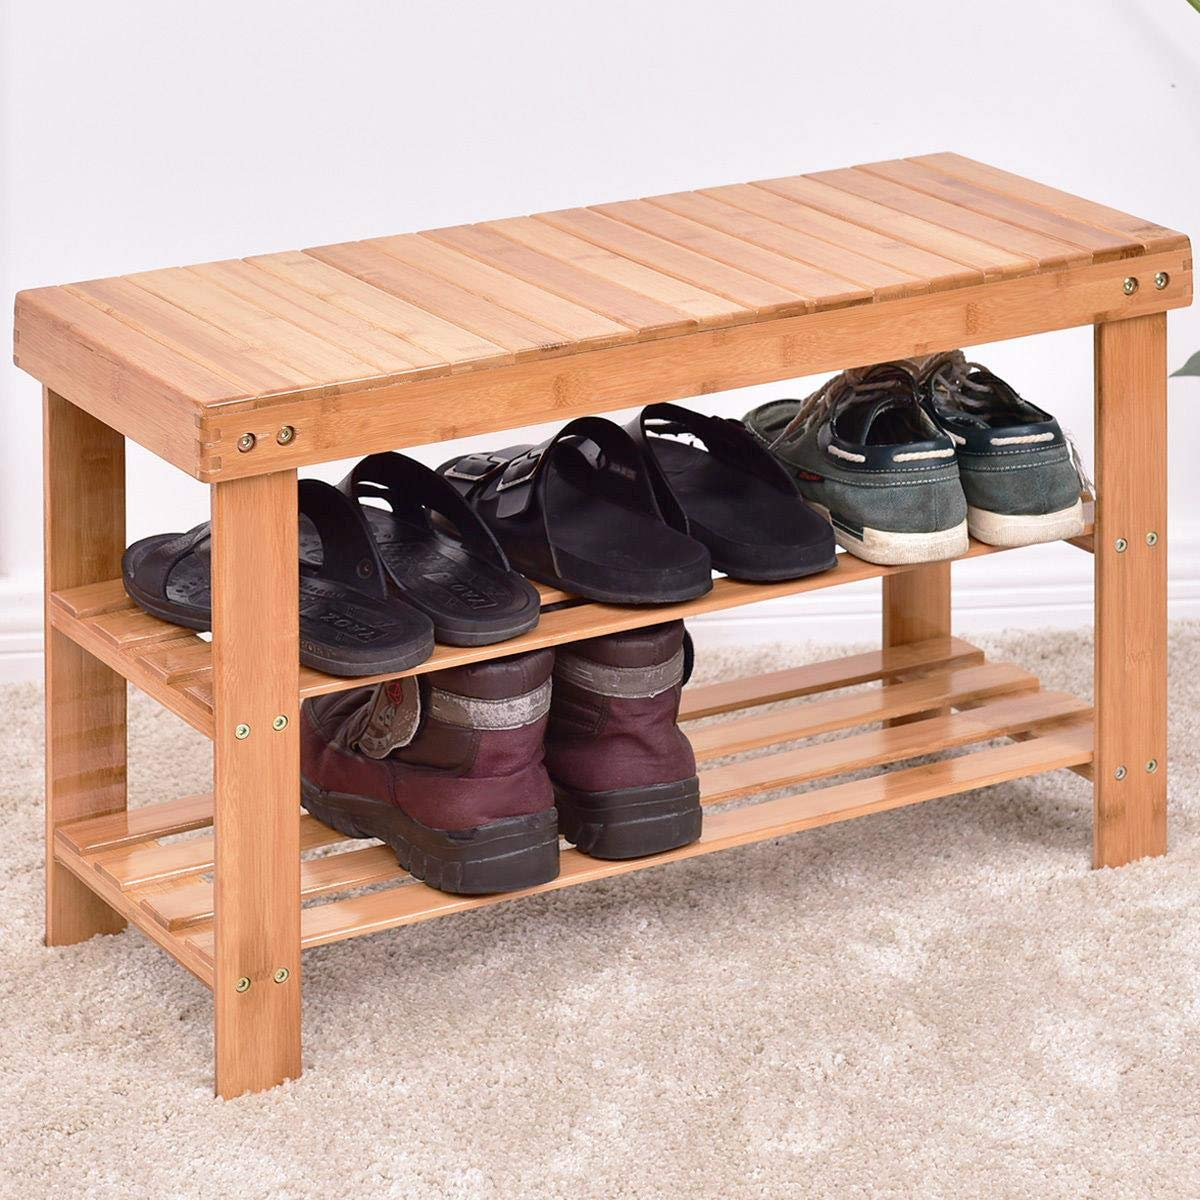 Goujxcy Bamboo Shoe Bench,3-Tier 10-Pair Bamboo Shoe Organizer,Storage Shelf Holds Up to 551 lbs,Ideal for Hallway/Bathroom/Living Room Wood Color by Goujxcy